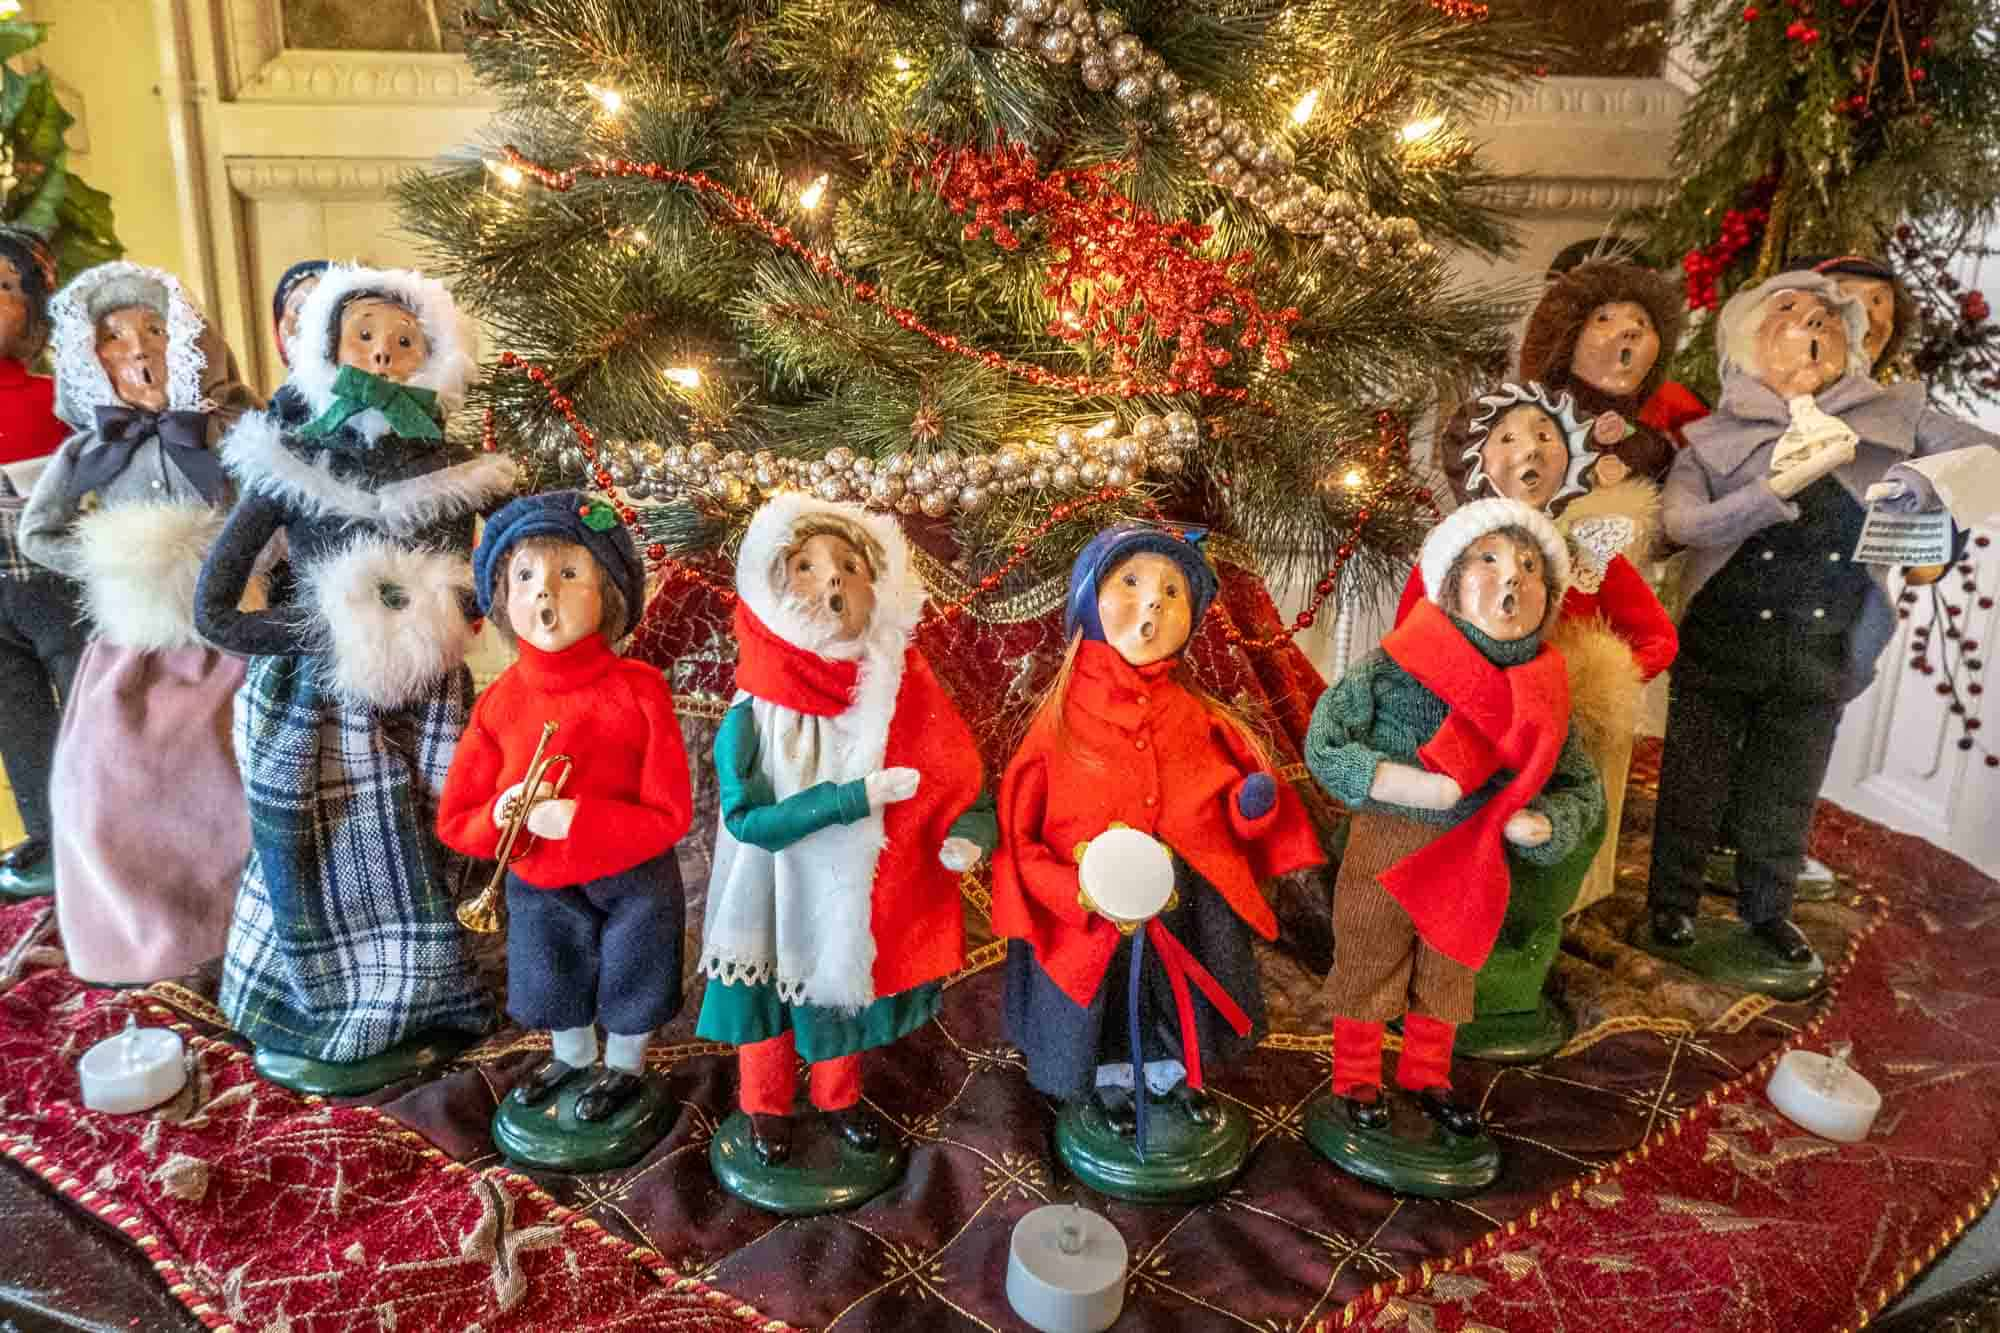 Carved wooden figurines dressed in Christmas and winter clothing